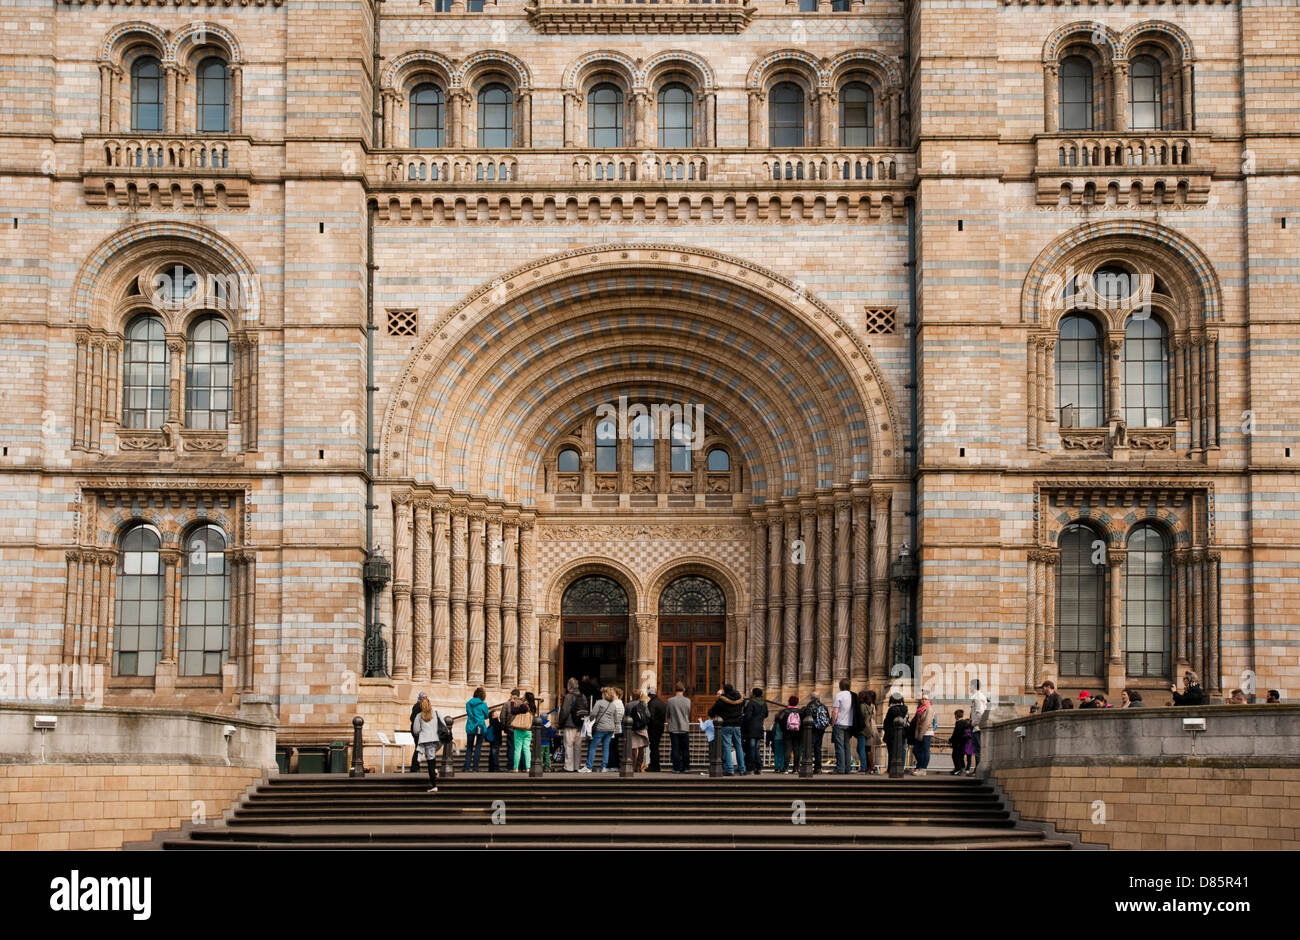 Tourists at Natural History Museum London England - Stock Image